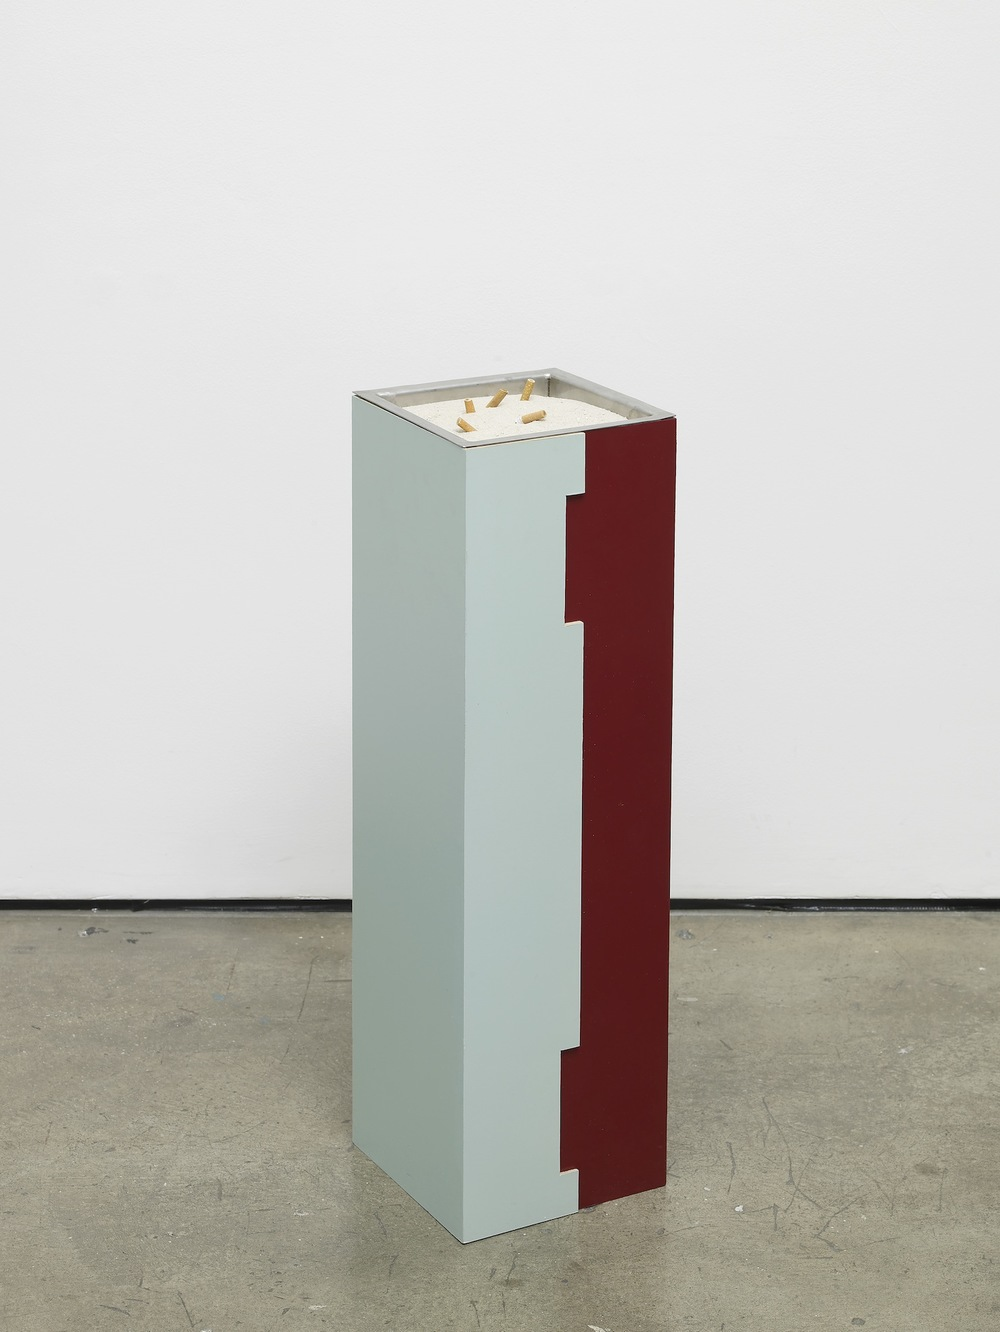 French Junkies #11 2002 Lacquered wood, stainless steel, sand 80 x 23.8 x 22.9 cm / 31.5 x 9.4 x 9 in